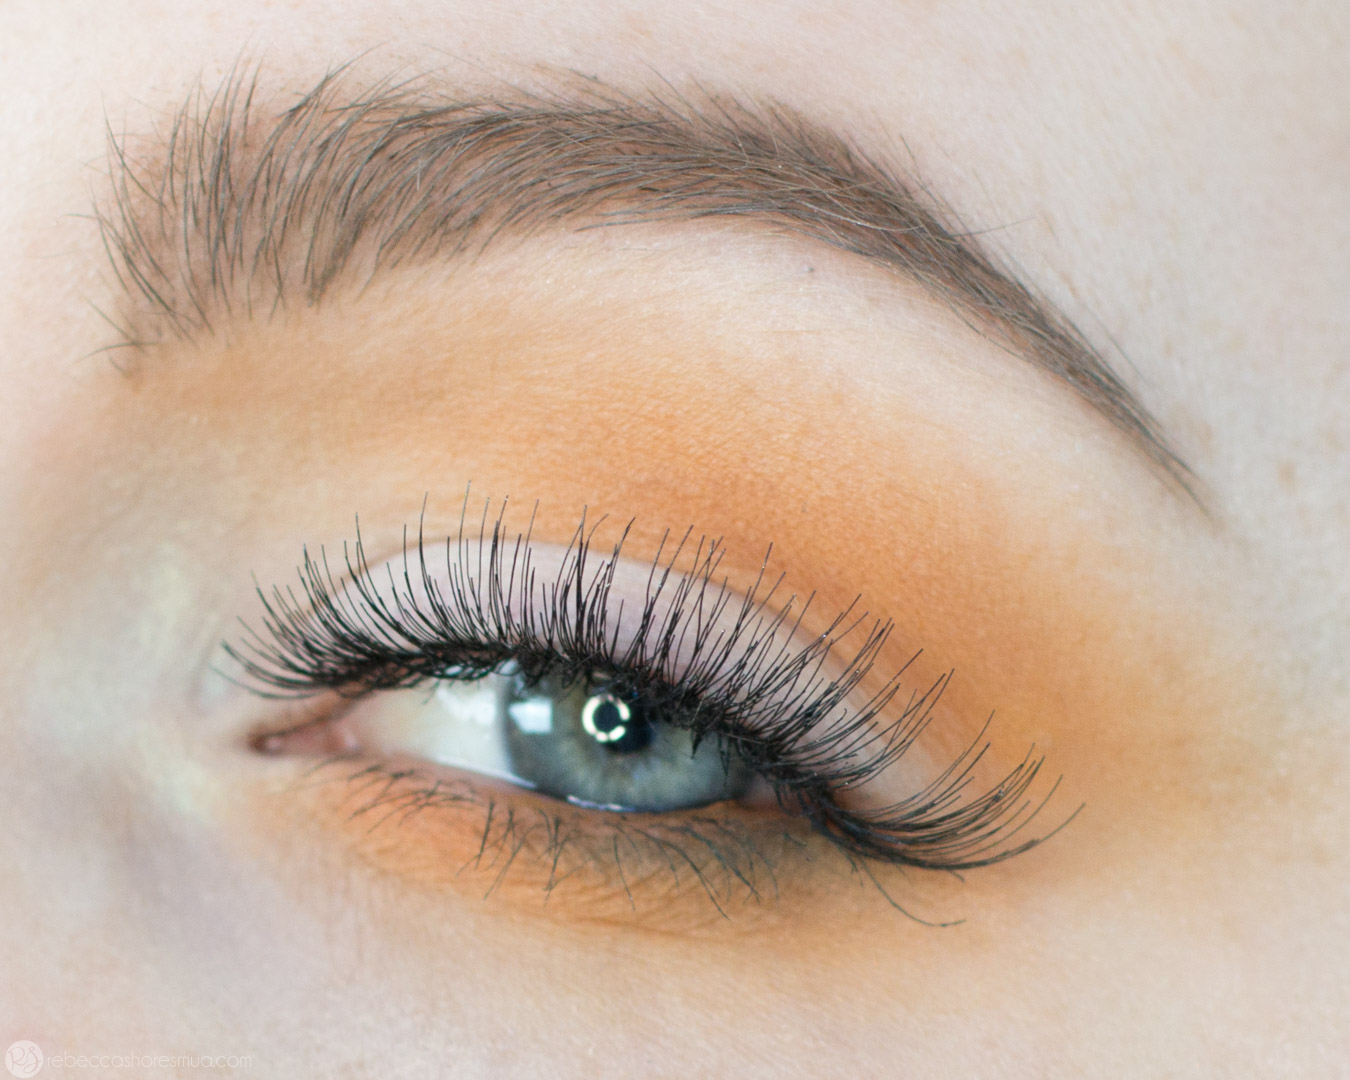 Orange and Yellow Eyeshadow Tutorial with Anastasia Beverlyhills Subculture Palette Final